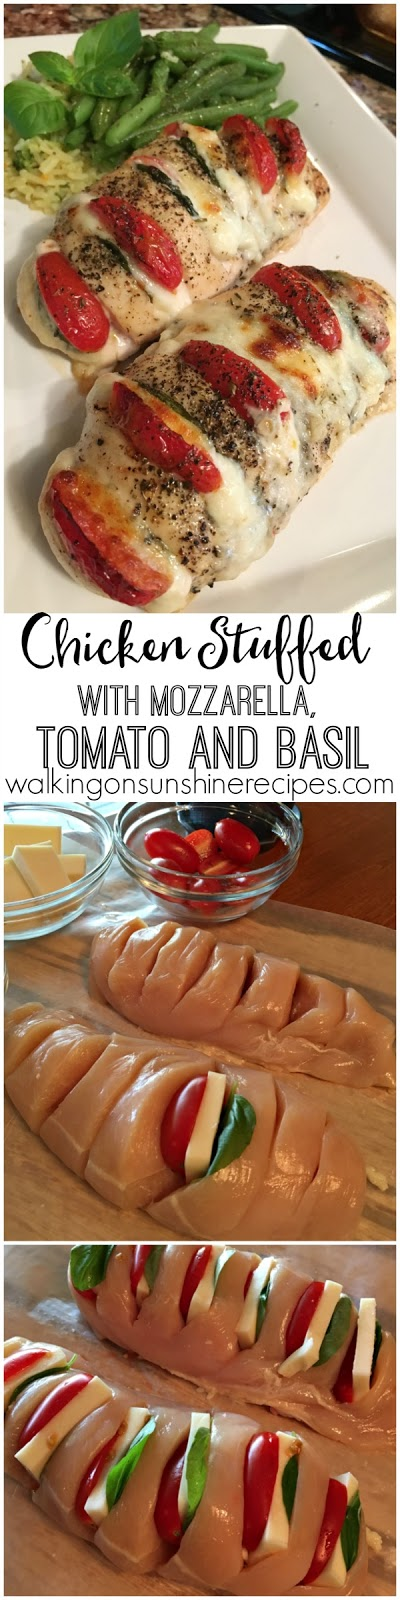 Hasselback Chicken stuffed with mozzarella, tomatoes and basil from Walking on Sunshine